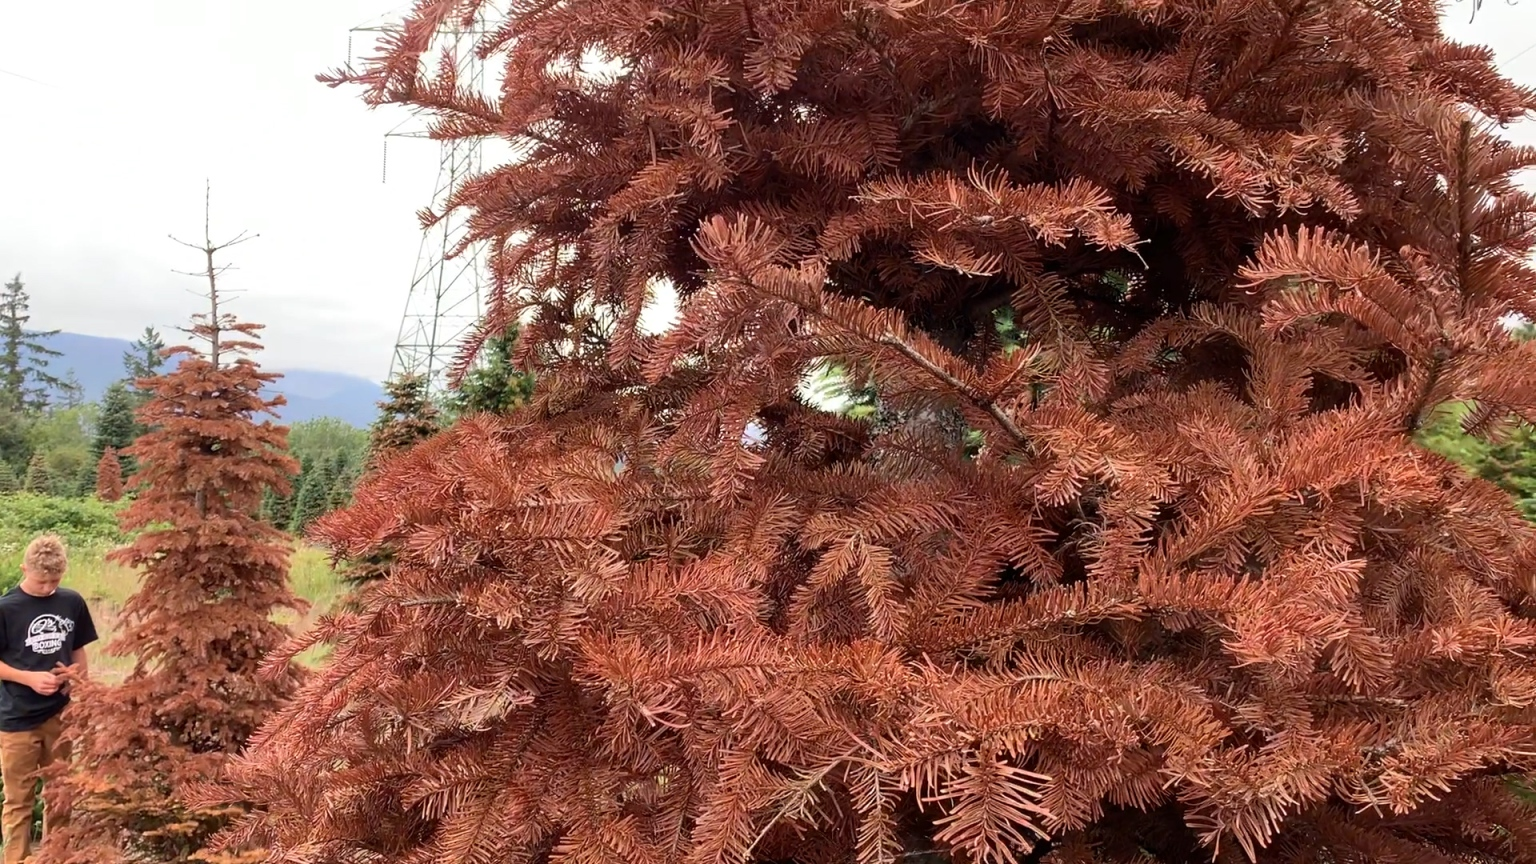 Local Christmas Tree Farmer; 'Not Sure If We Will Have Supply This Year, It Depends'